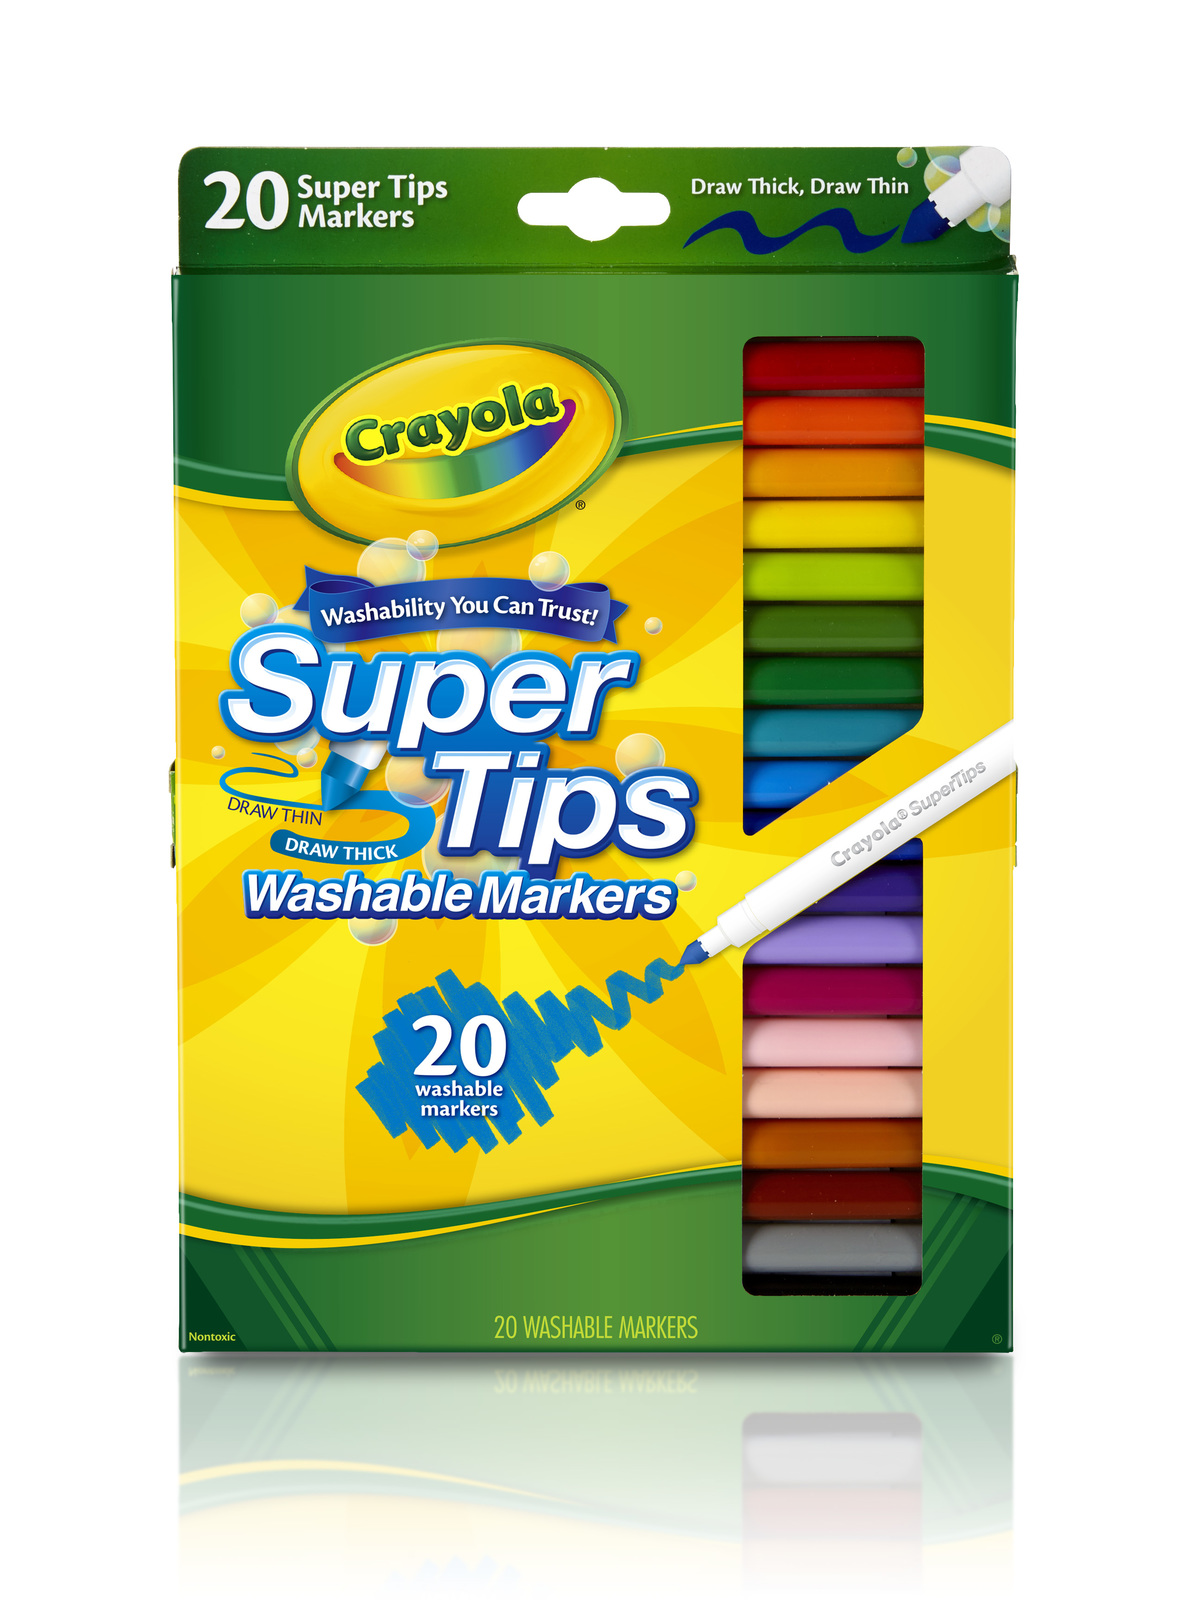 Crayola: 20 Washable Super Tips Markers image